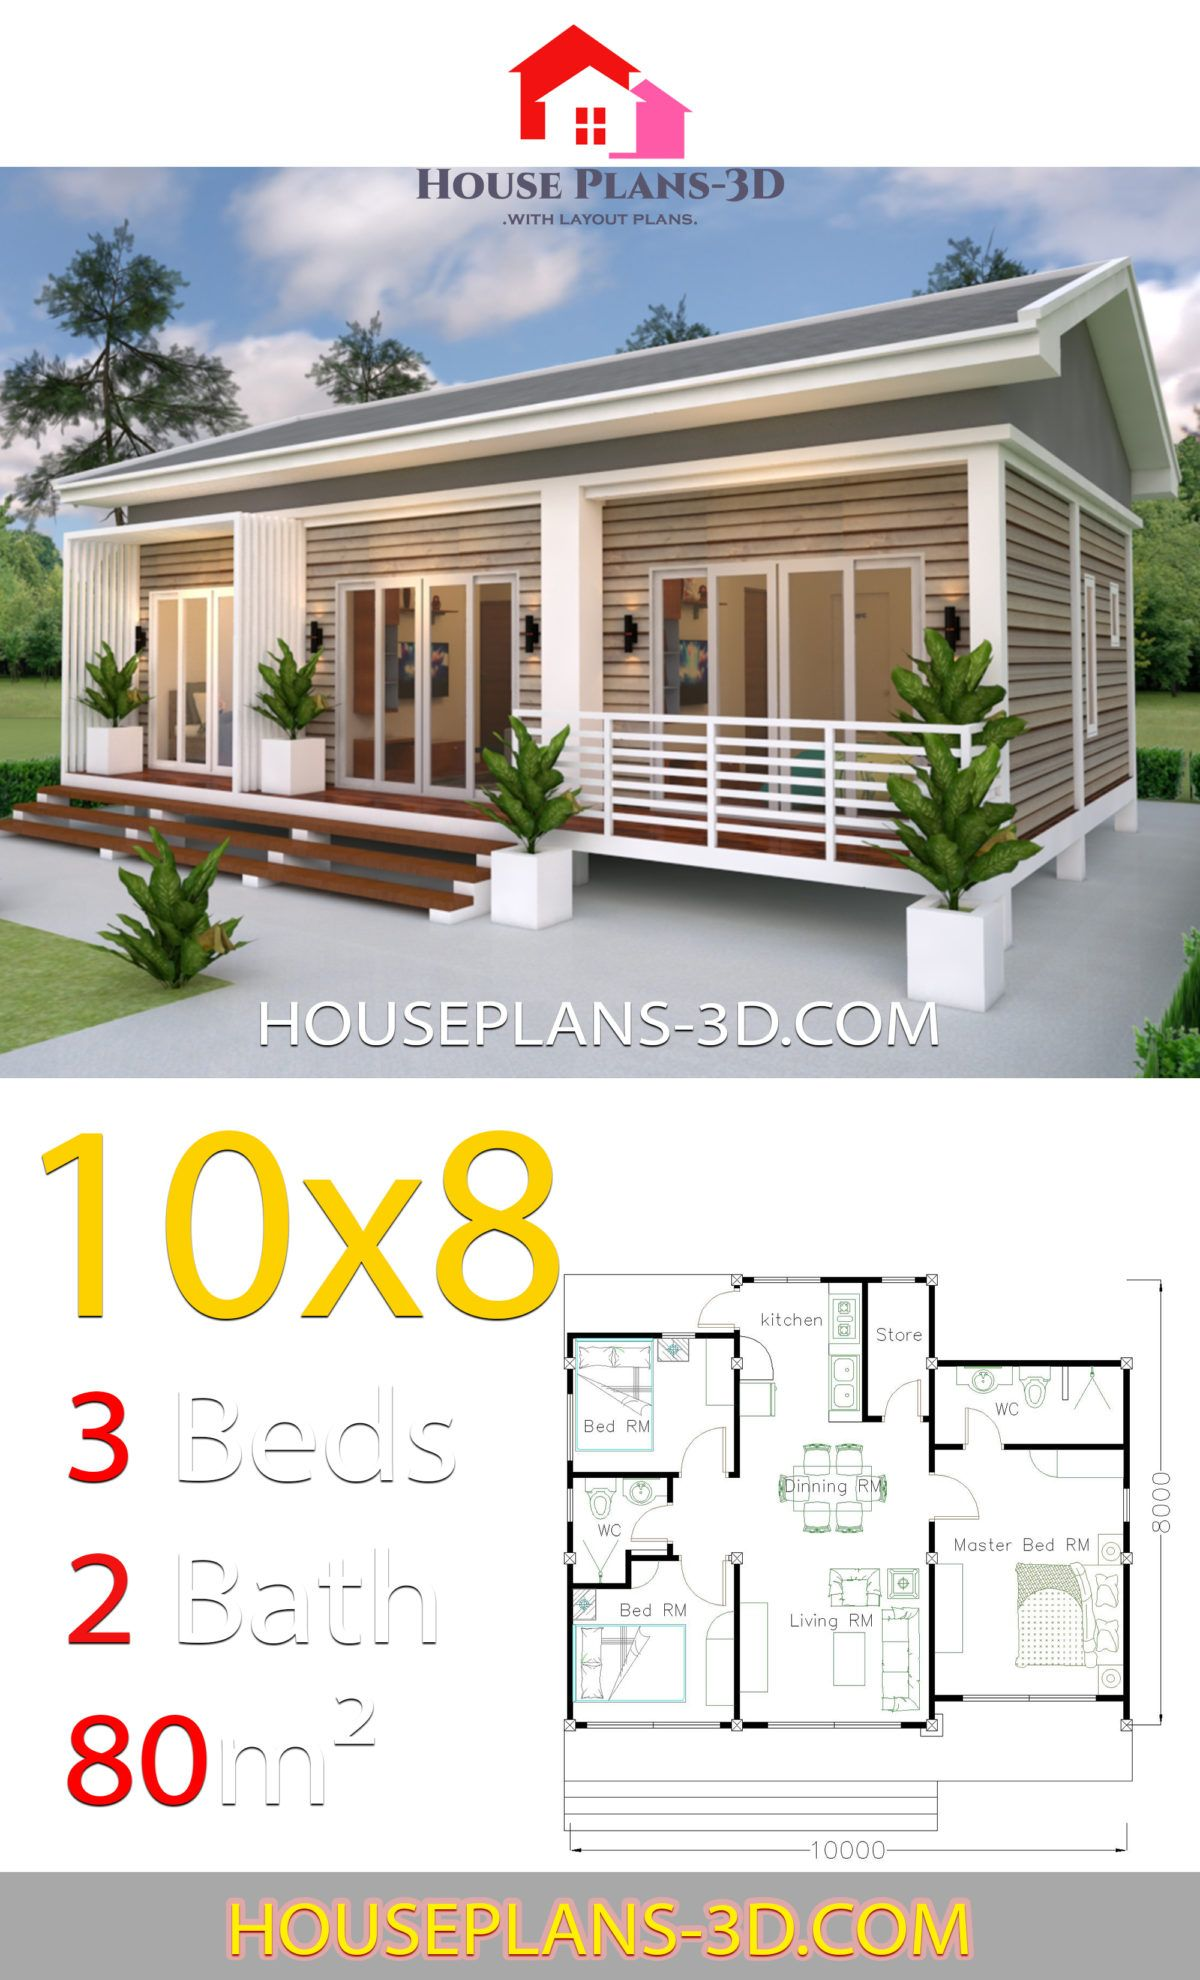 House Plans 10x8 With 3 Bedrooms Gable Roof House Plans 3d House Plans Beautiful House Plans Gable Roof House